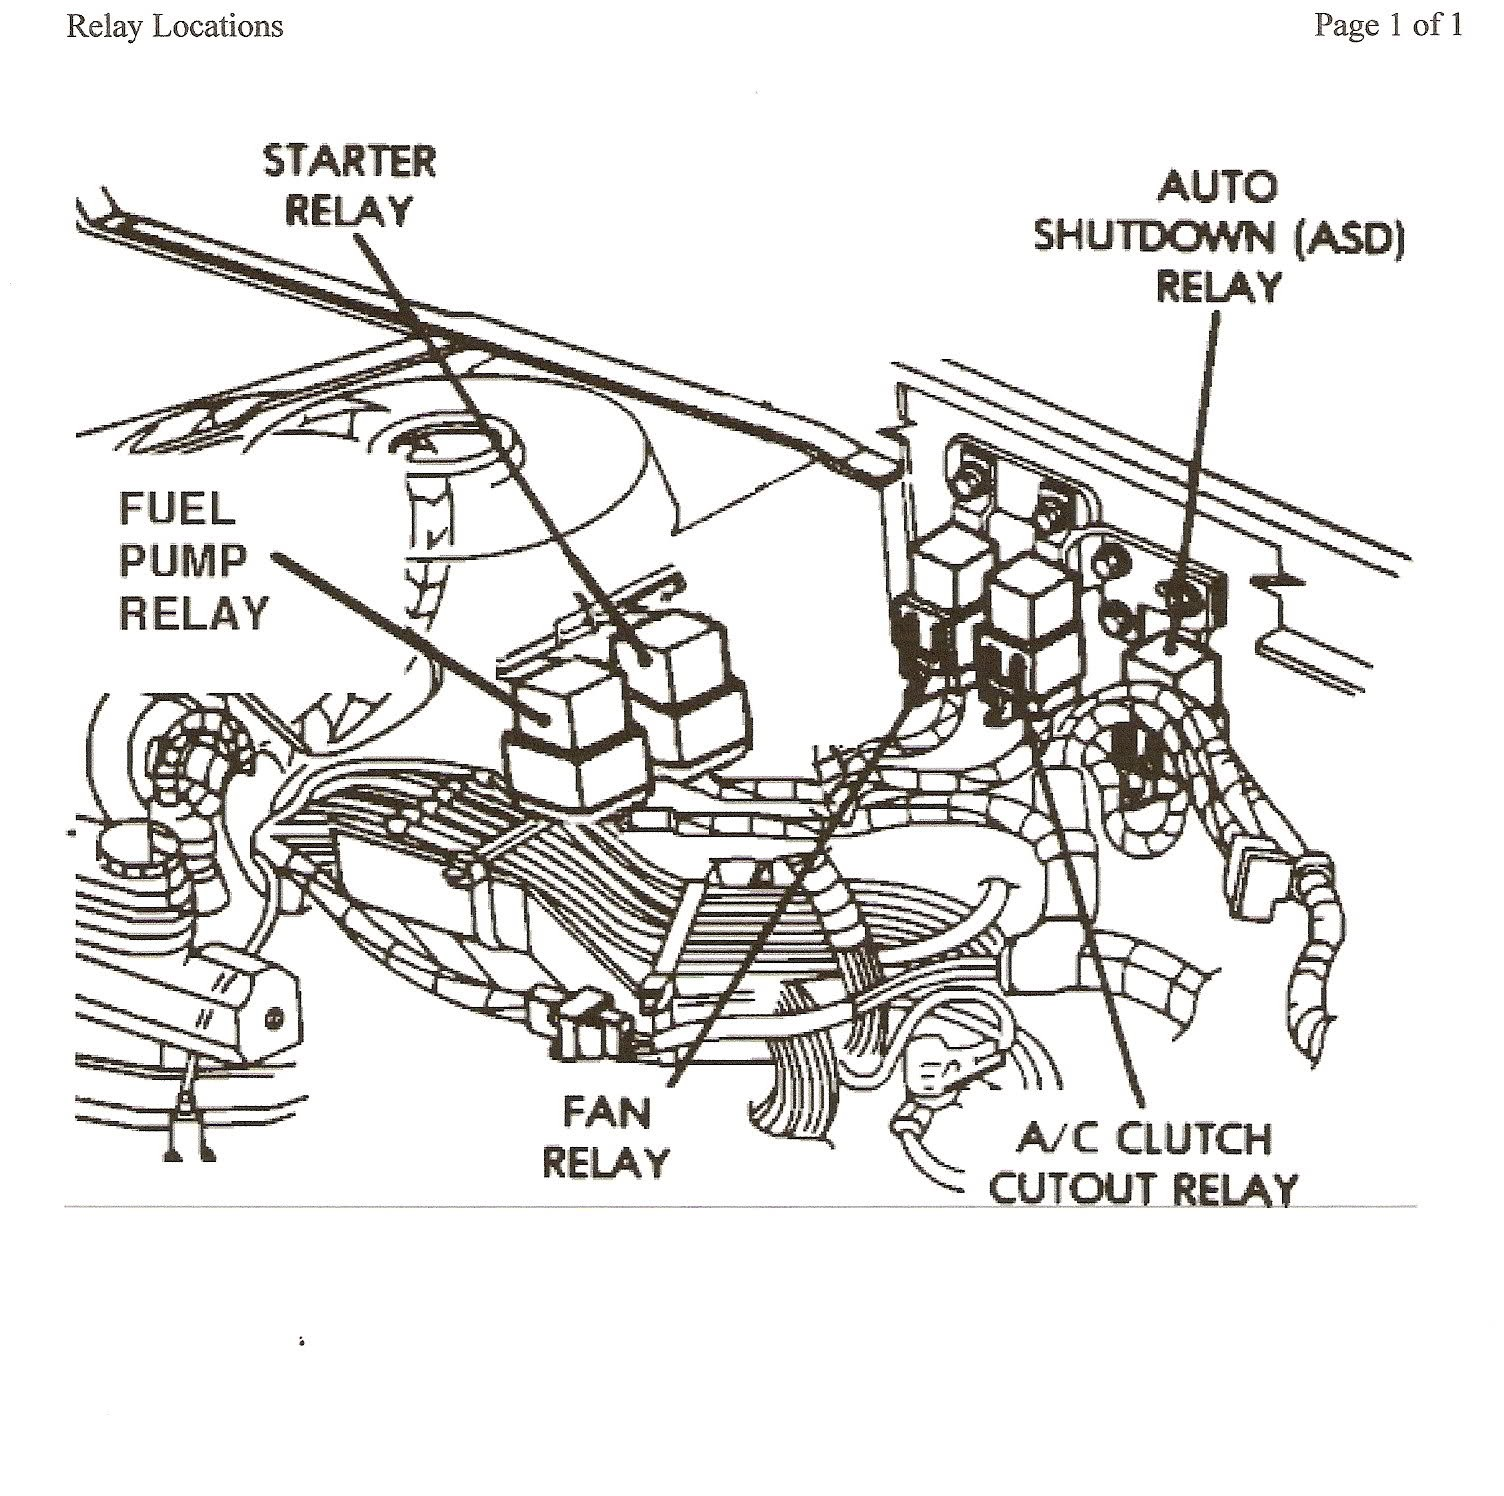 2007 Chrysler Pacifica Engine Diagram 2005 300 Wiring Diagrams 2004 Ground Of